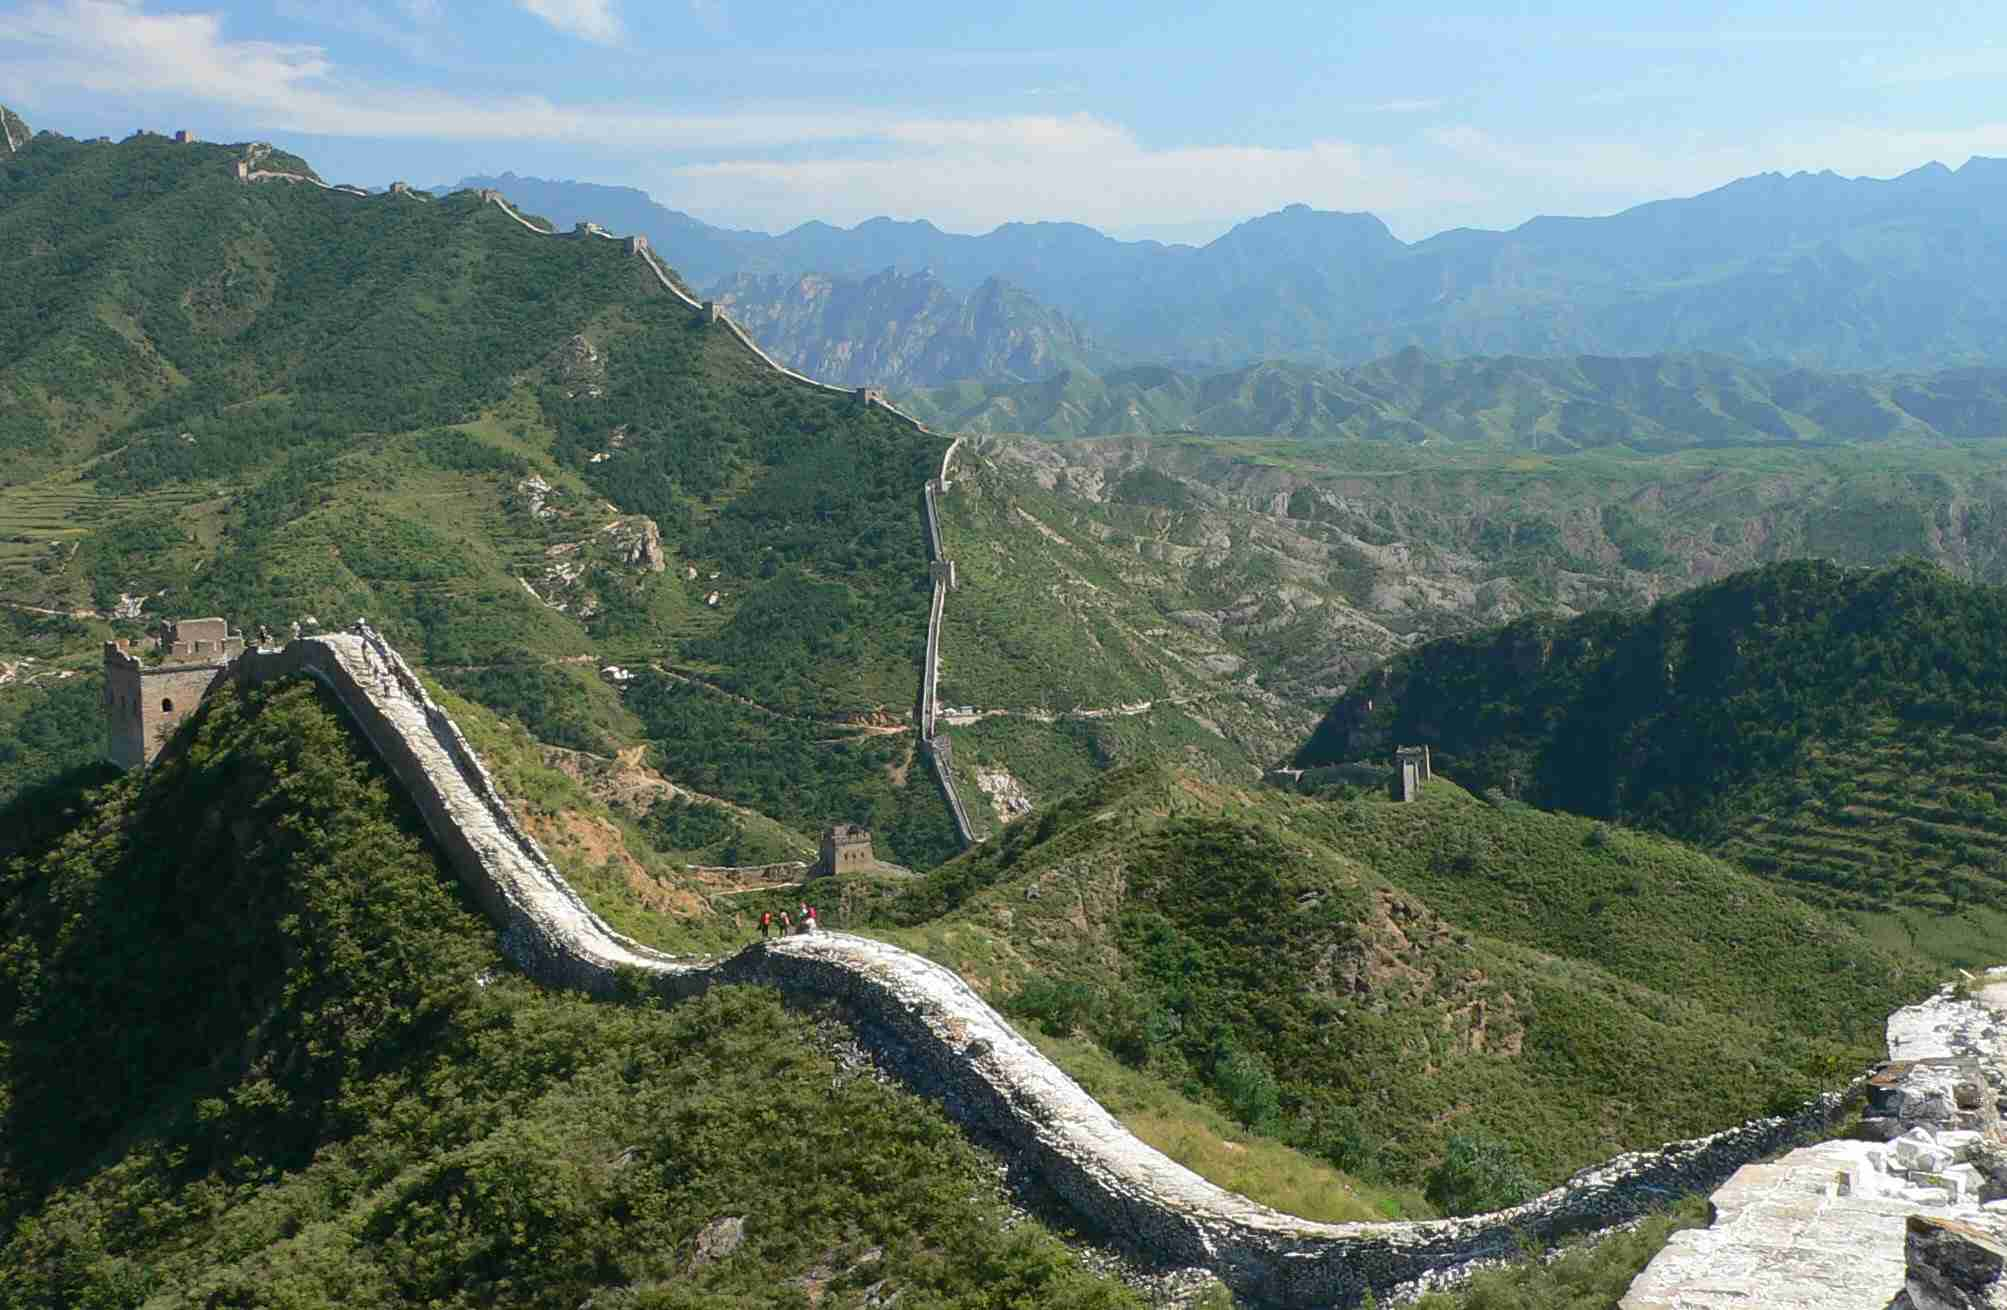 Wonders of the Modern World, The Great Wall of China